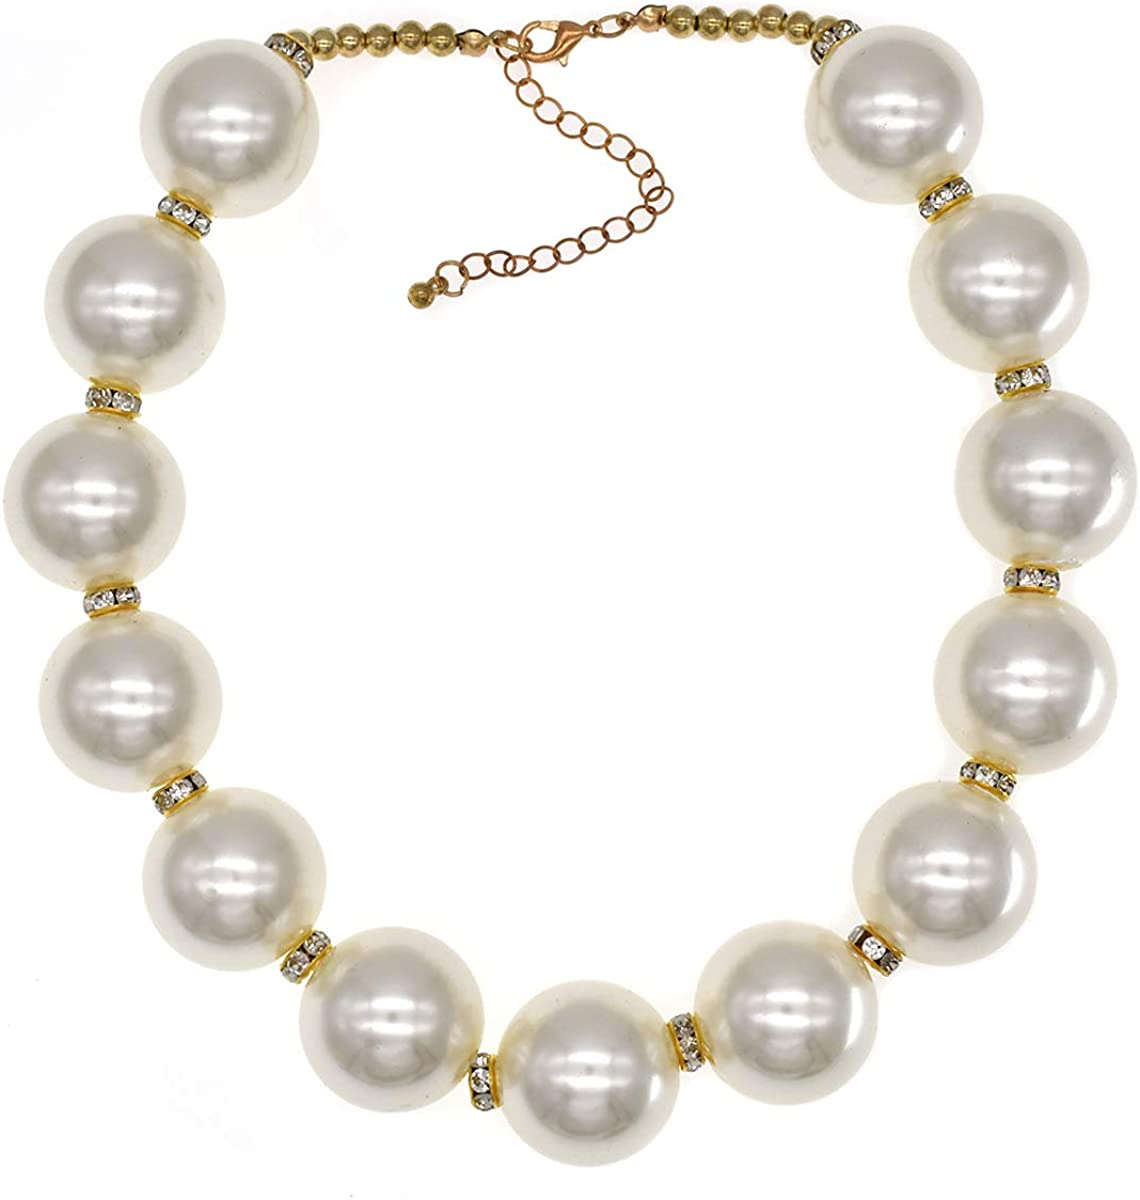 CIOOU Chunky Large Pearl Necklace for Women Big Fake Pearl Necklace Faux Pearl Necklaces Costume Jewelry